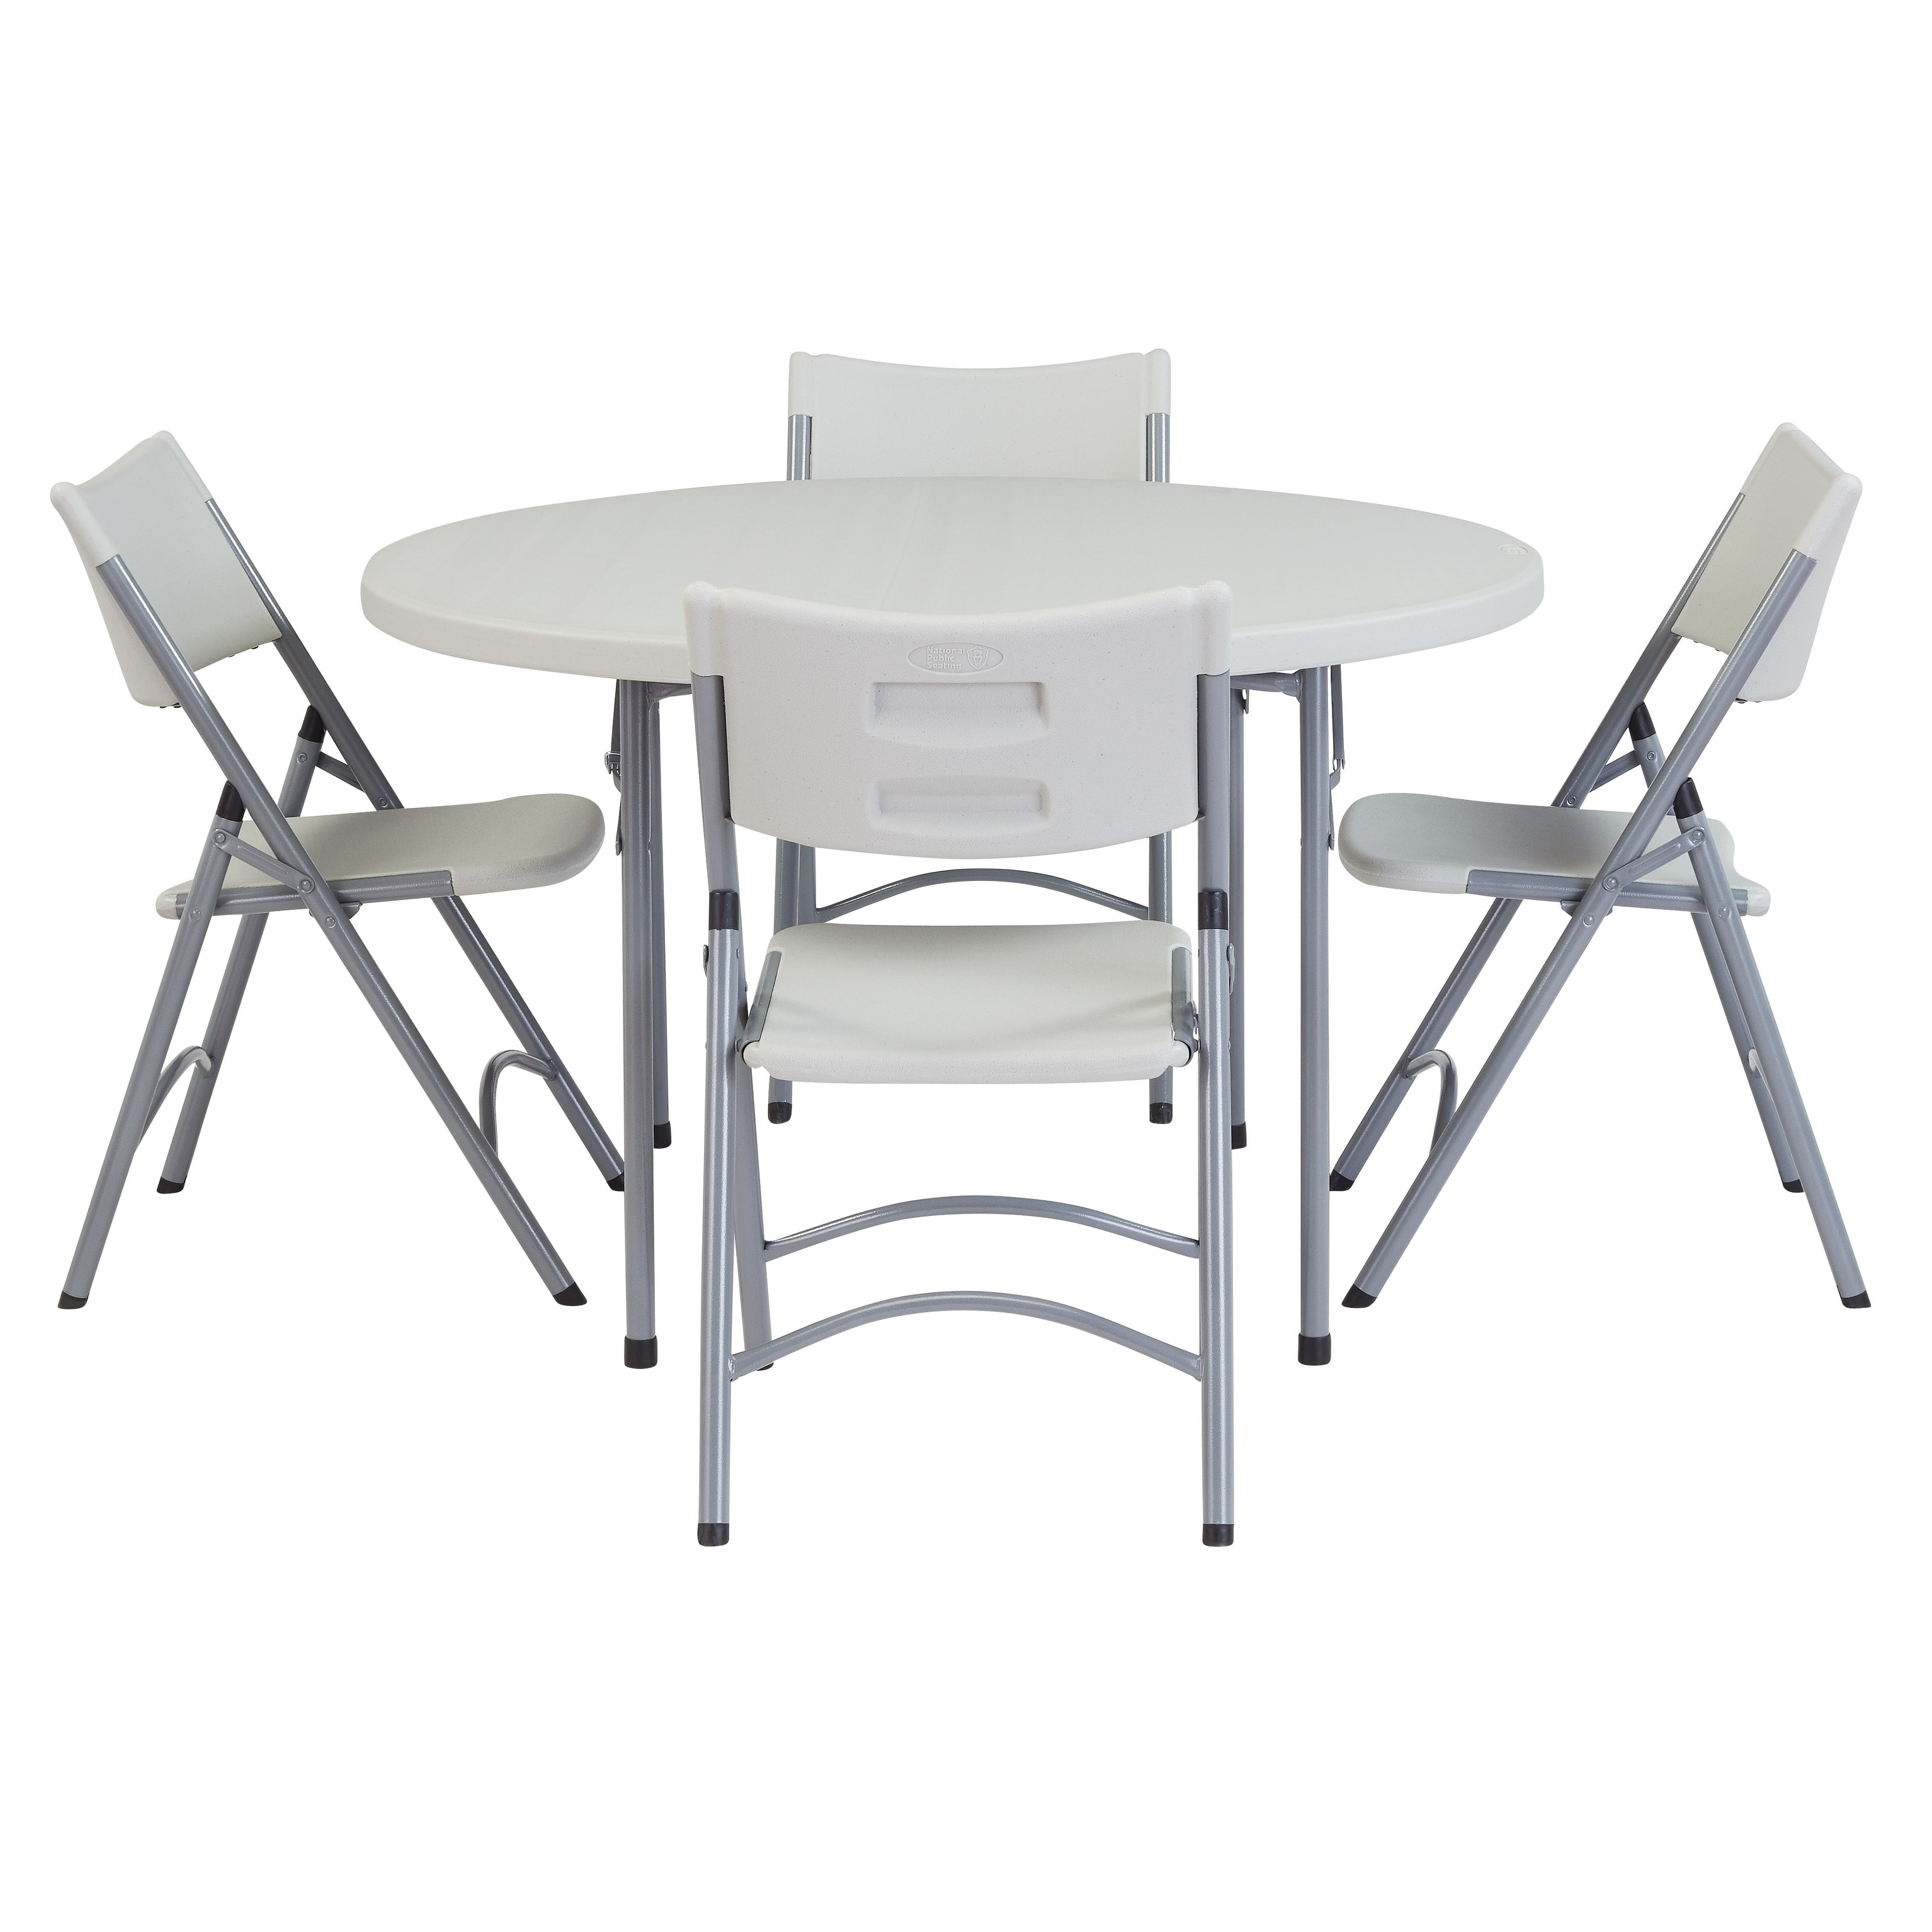 Terrific Nps Heavy Duty 48 Inch Round Folding Table And Set Of 4 Chairs Bralicious Painted Fabric Chair Ideas Braliciousco